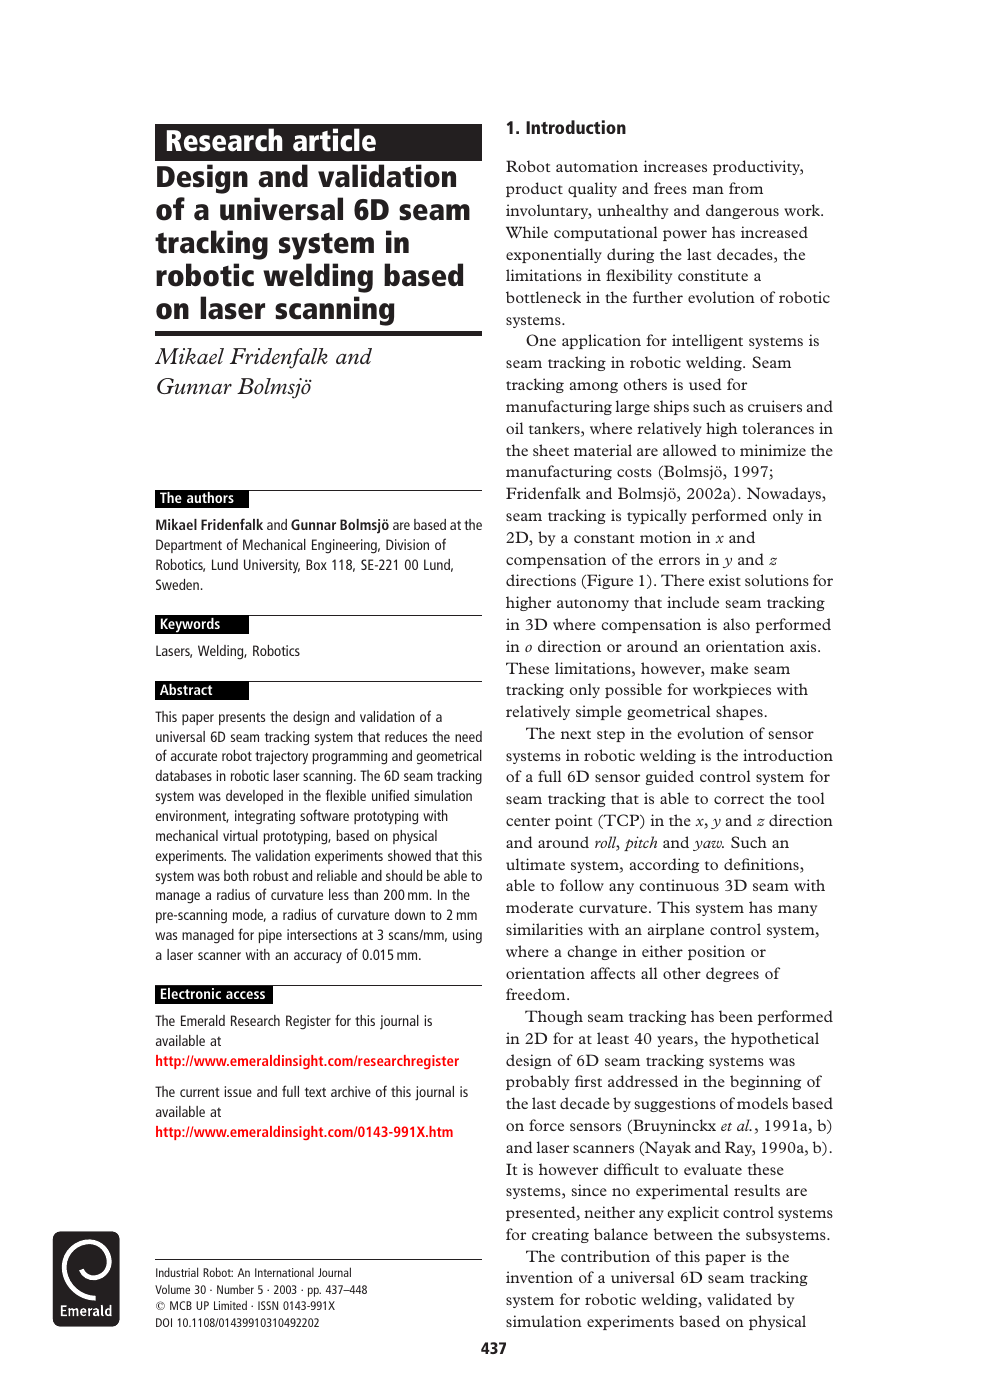 Design and validation of a universal 6D seam tracking system